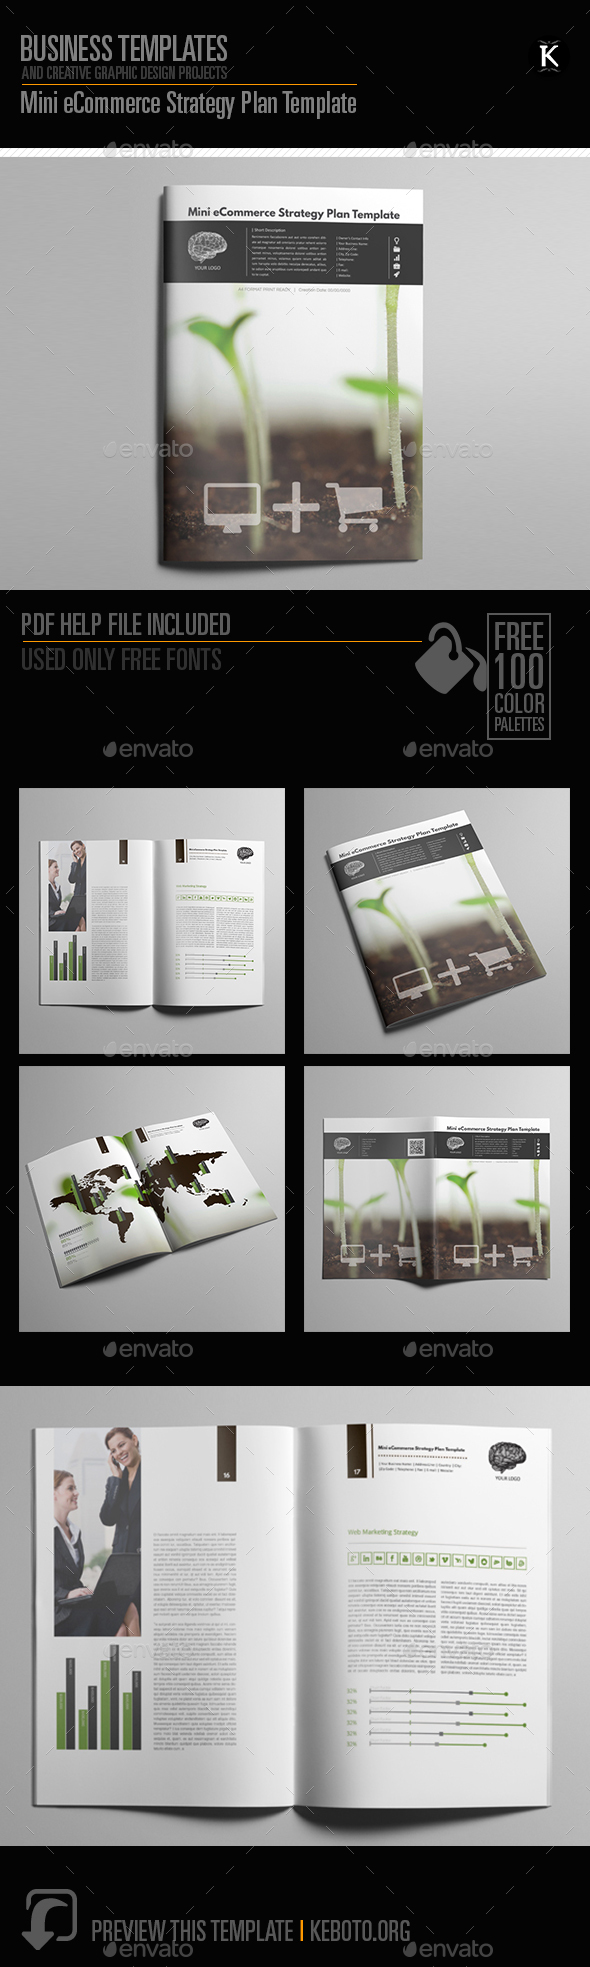 Mini eCommerce Strategy Plan Template - Miscellaneous Print Templates